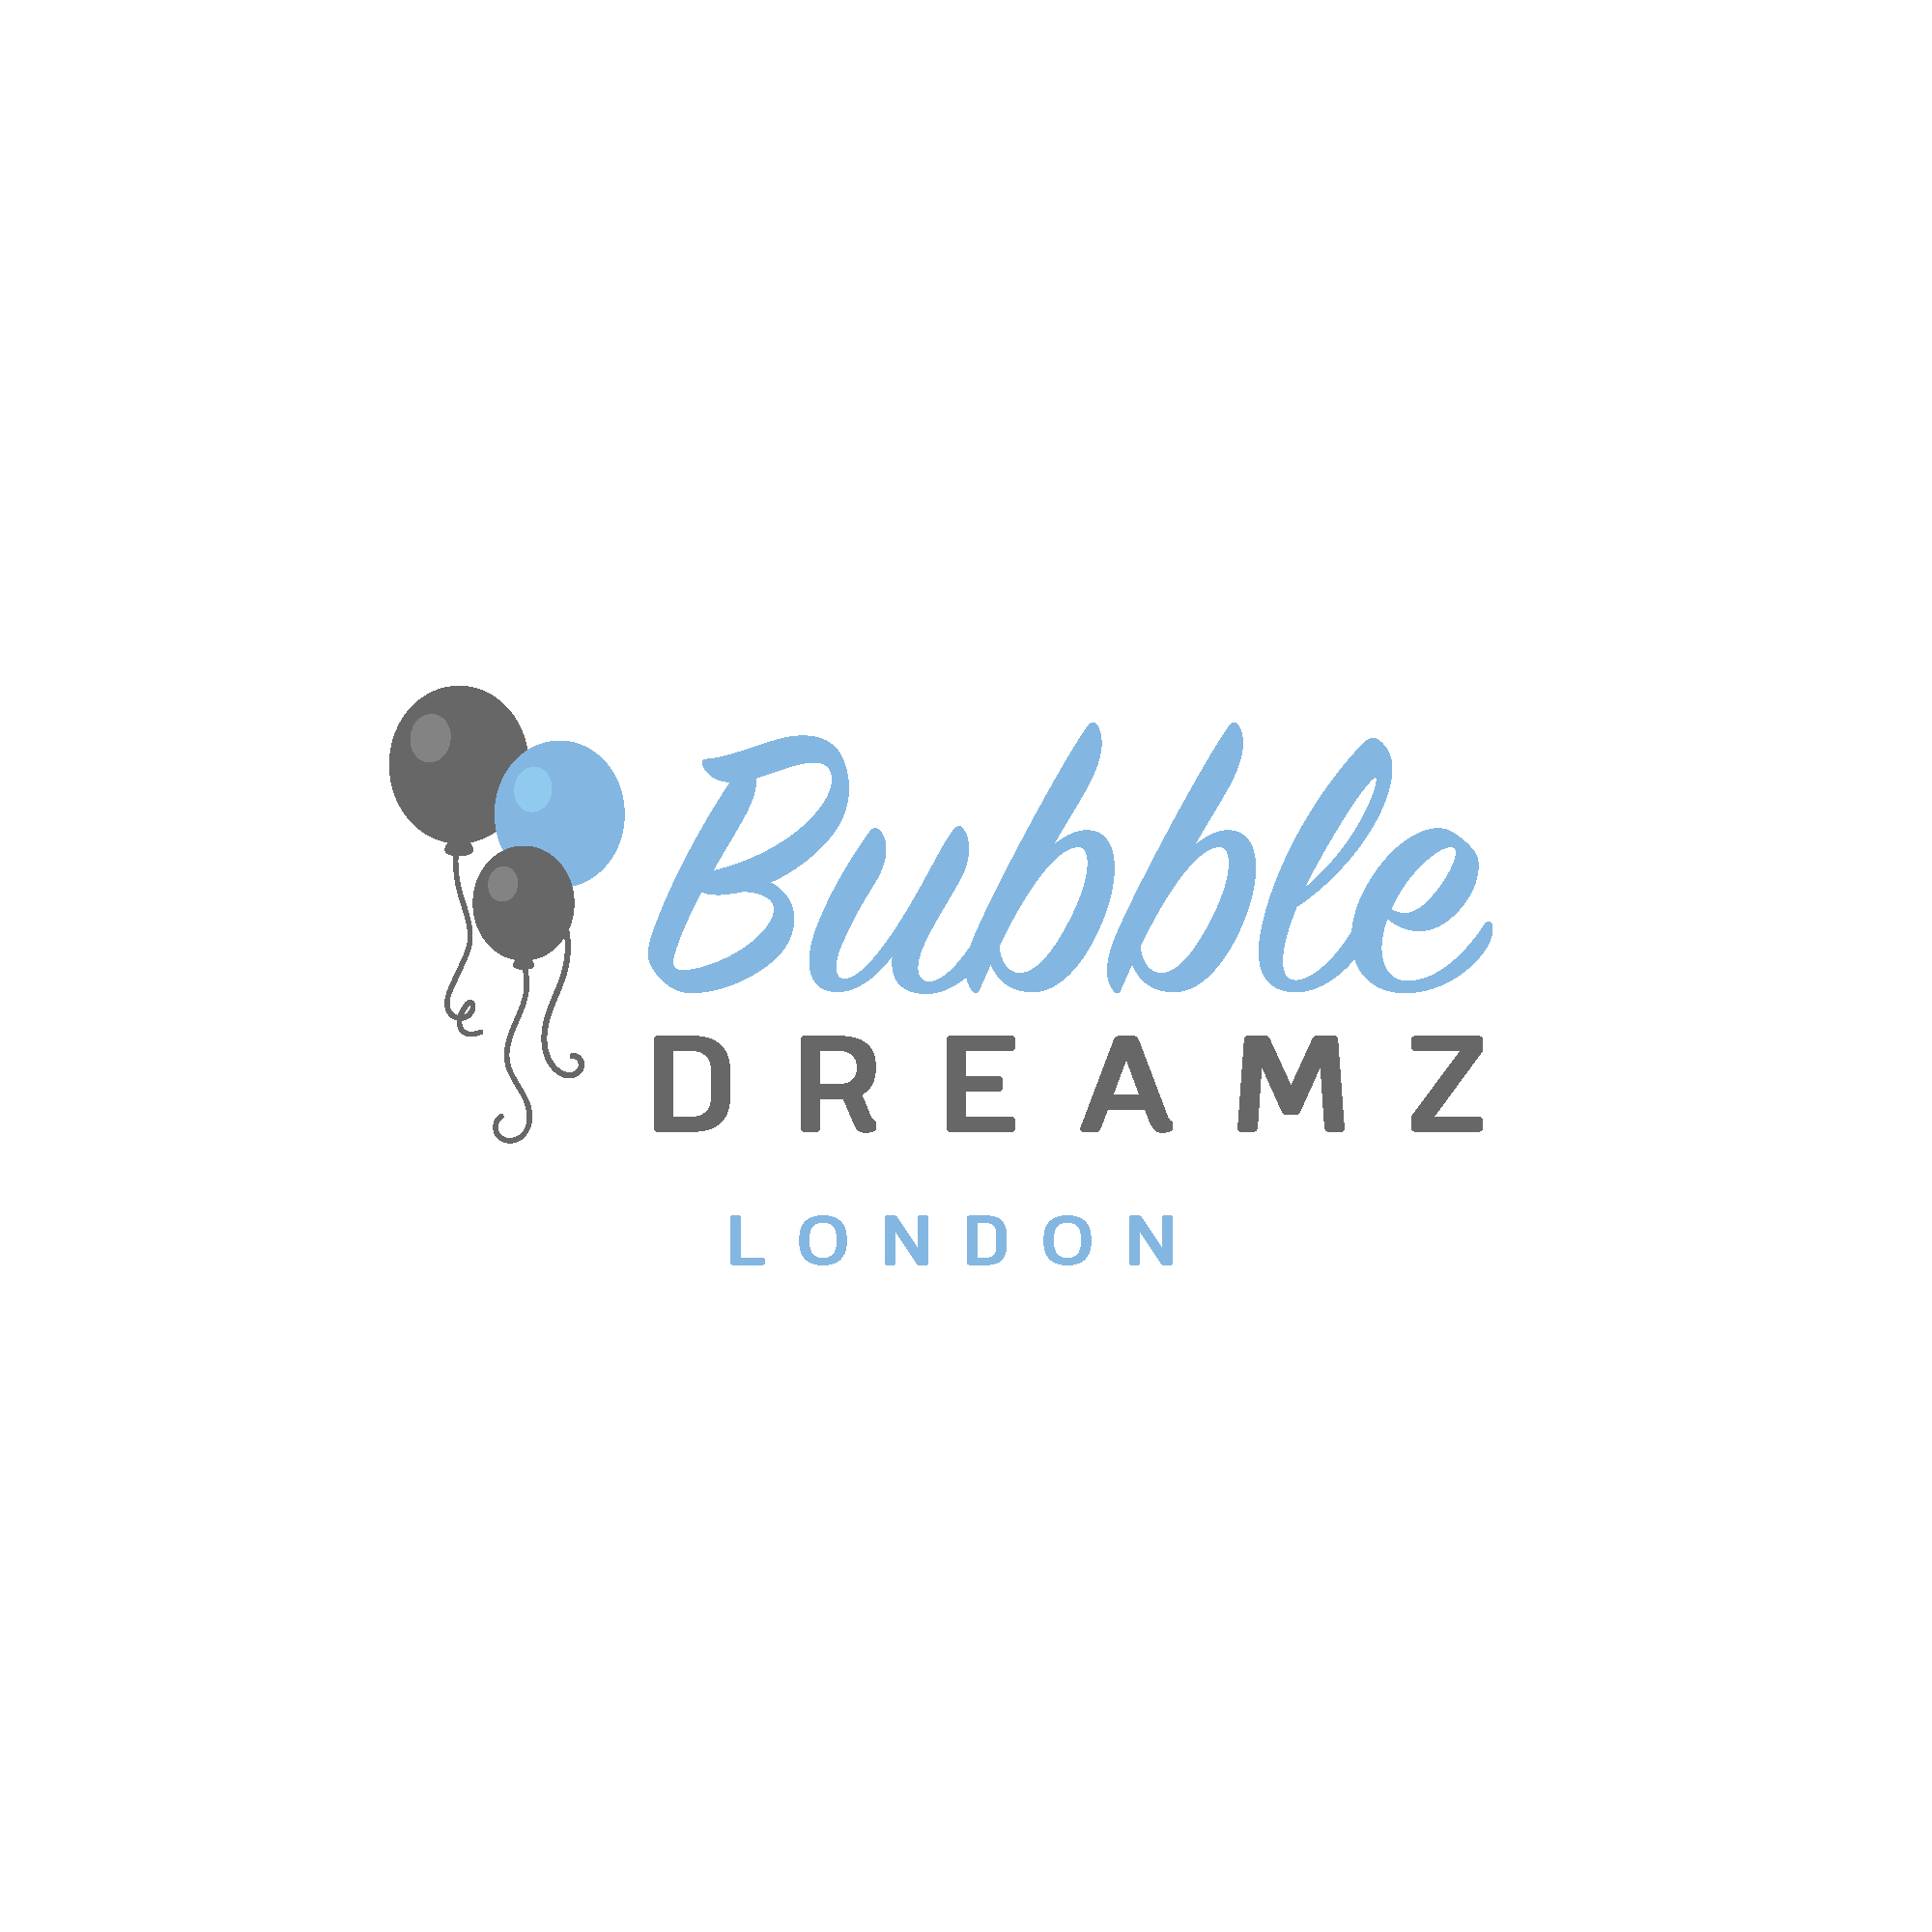 Logo - London Franchise Image